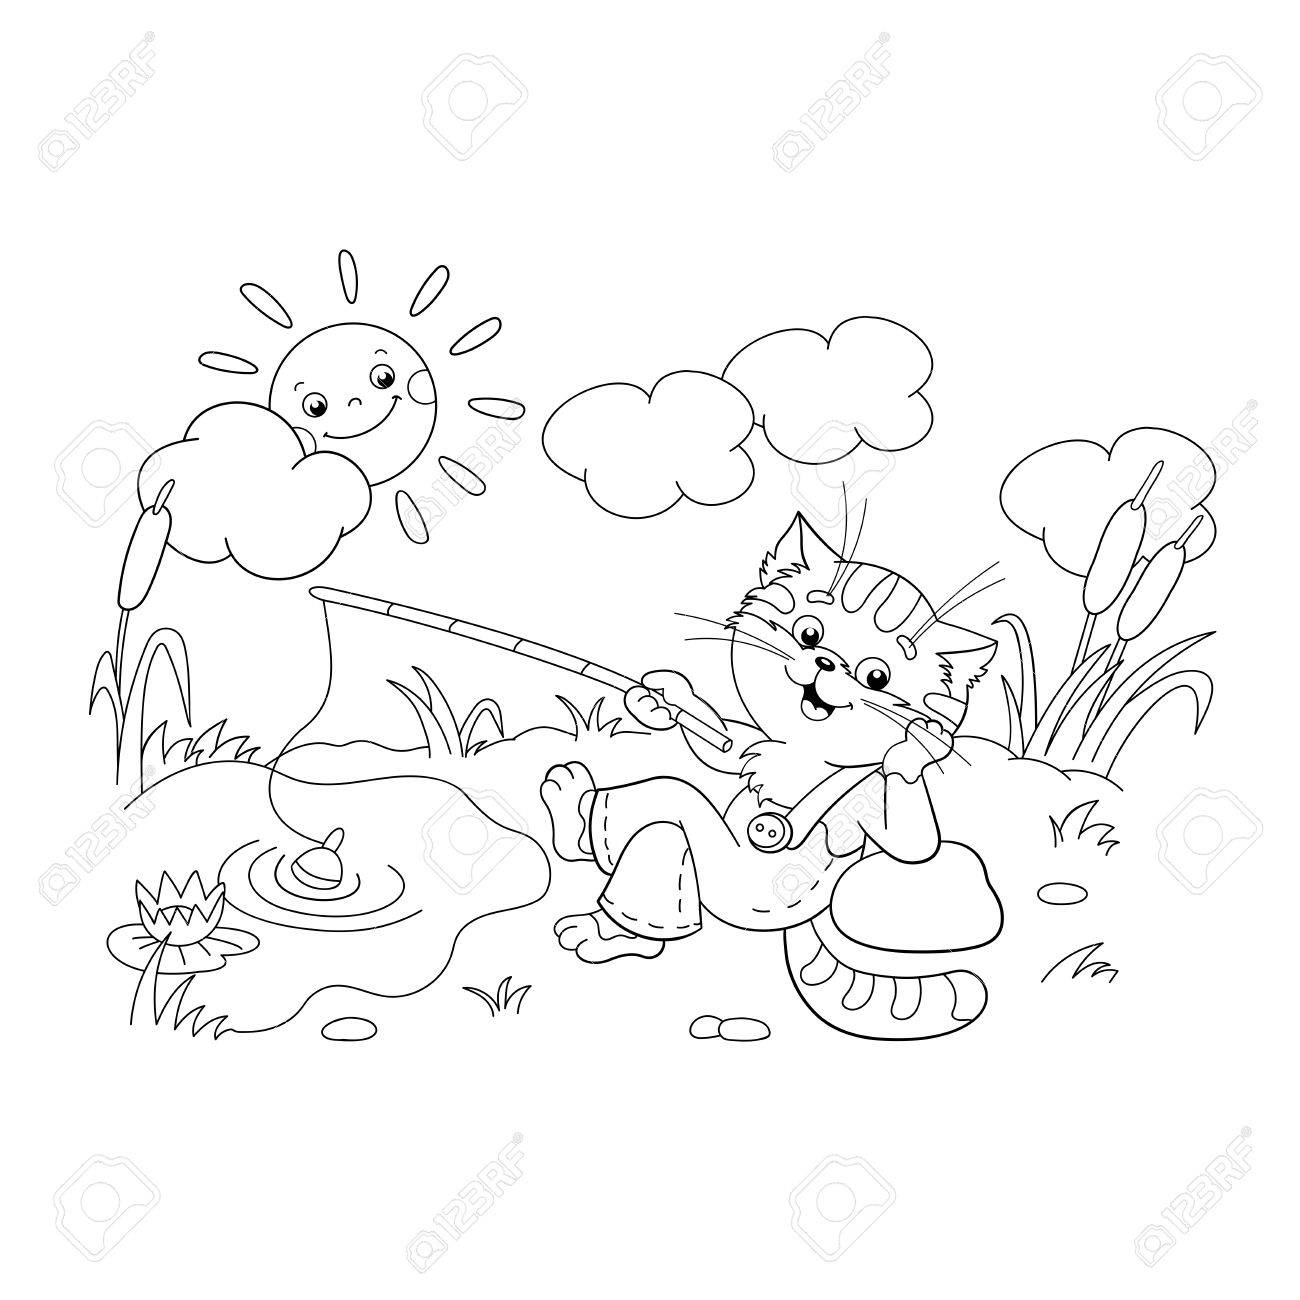 Coloring Page Outline Of A Funny Cat Catching A Fish On A Pond ...